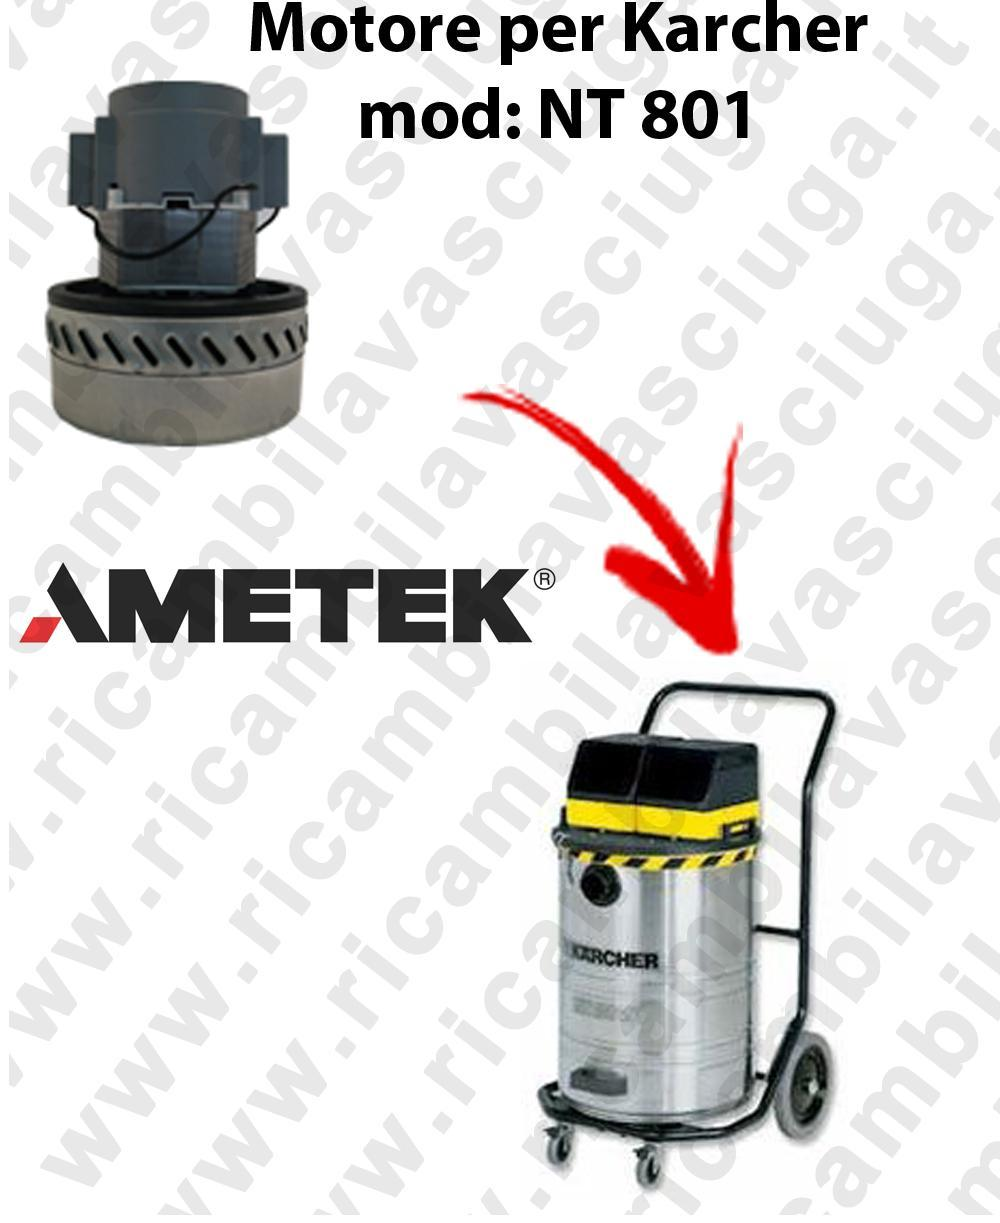 NT 801 Ametek Vacuum Motor for vacuum cleaner KARCHER